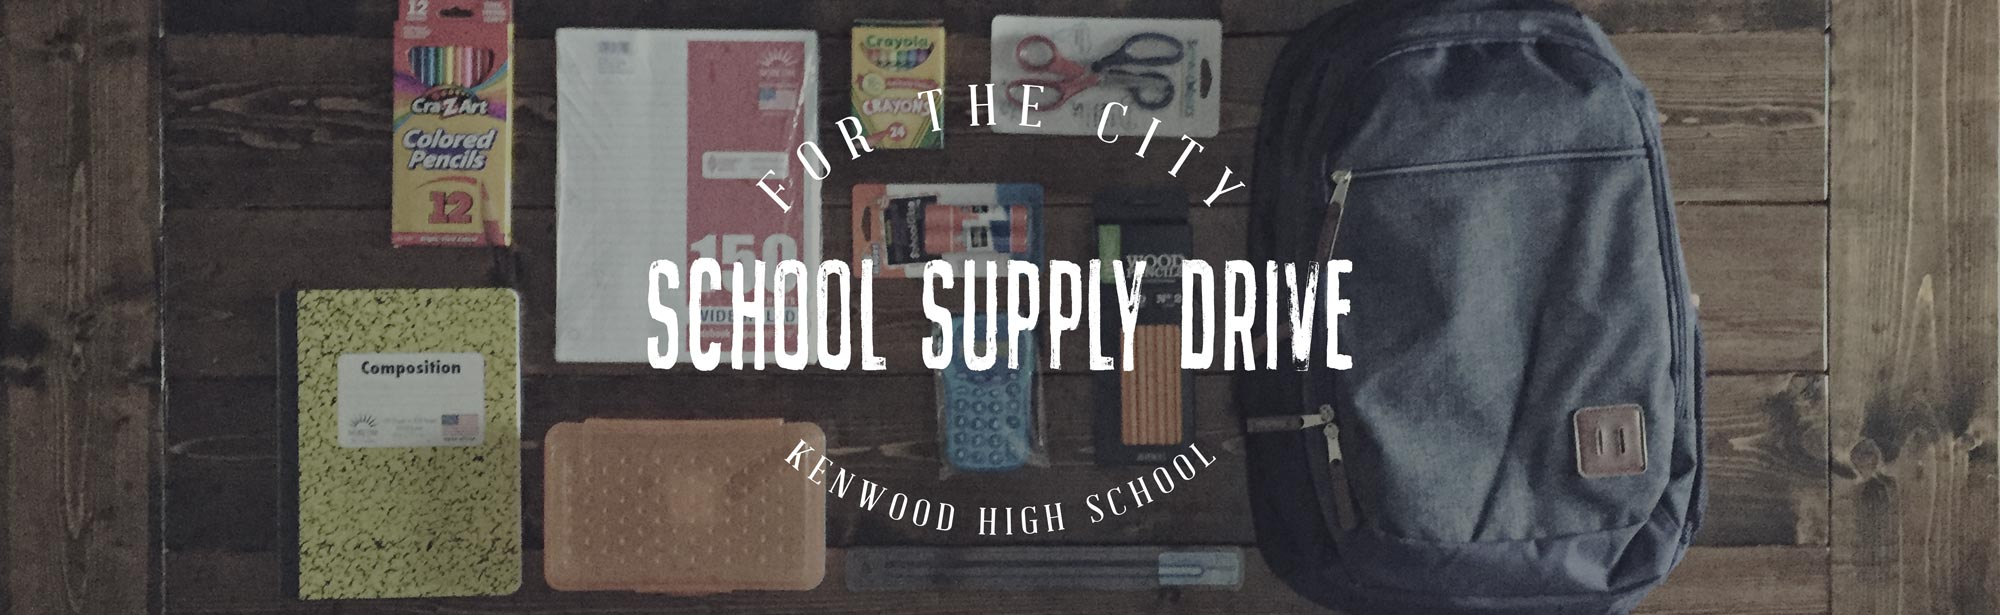 School Supply Drive - For the City - Grace Community Church